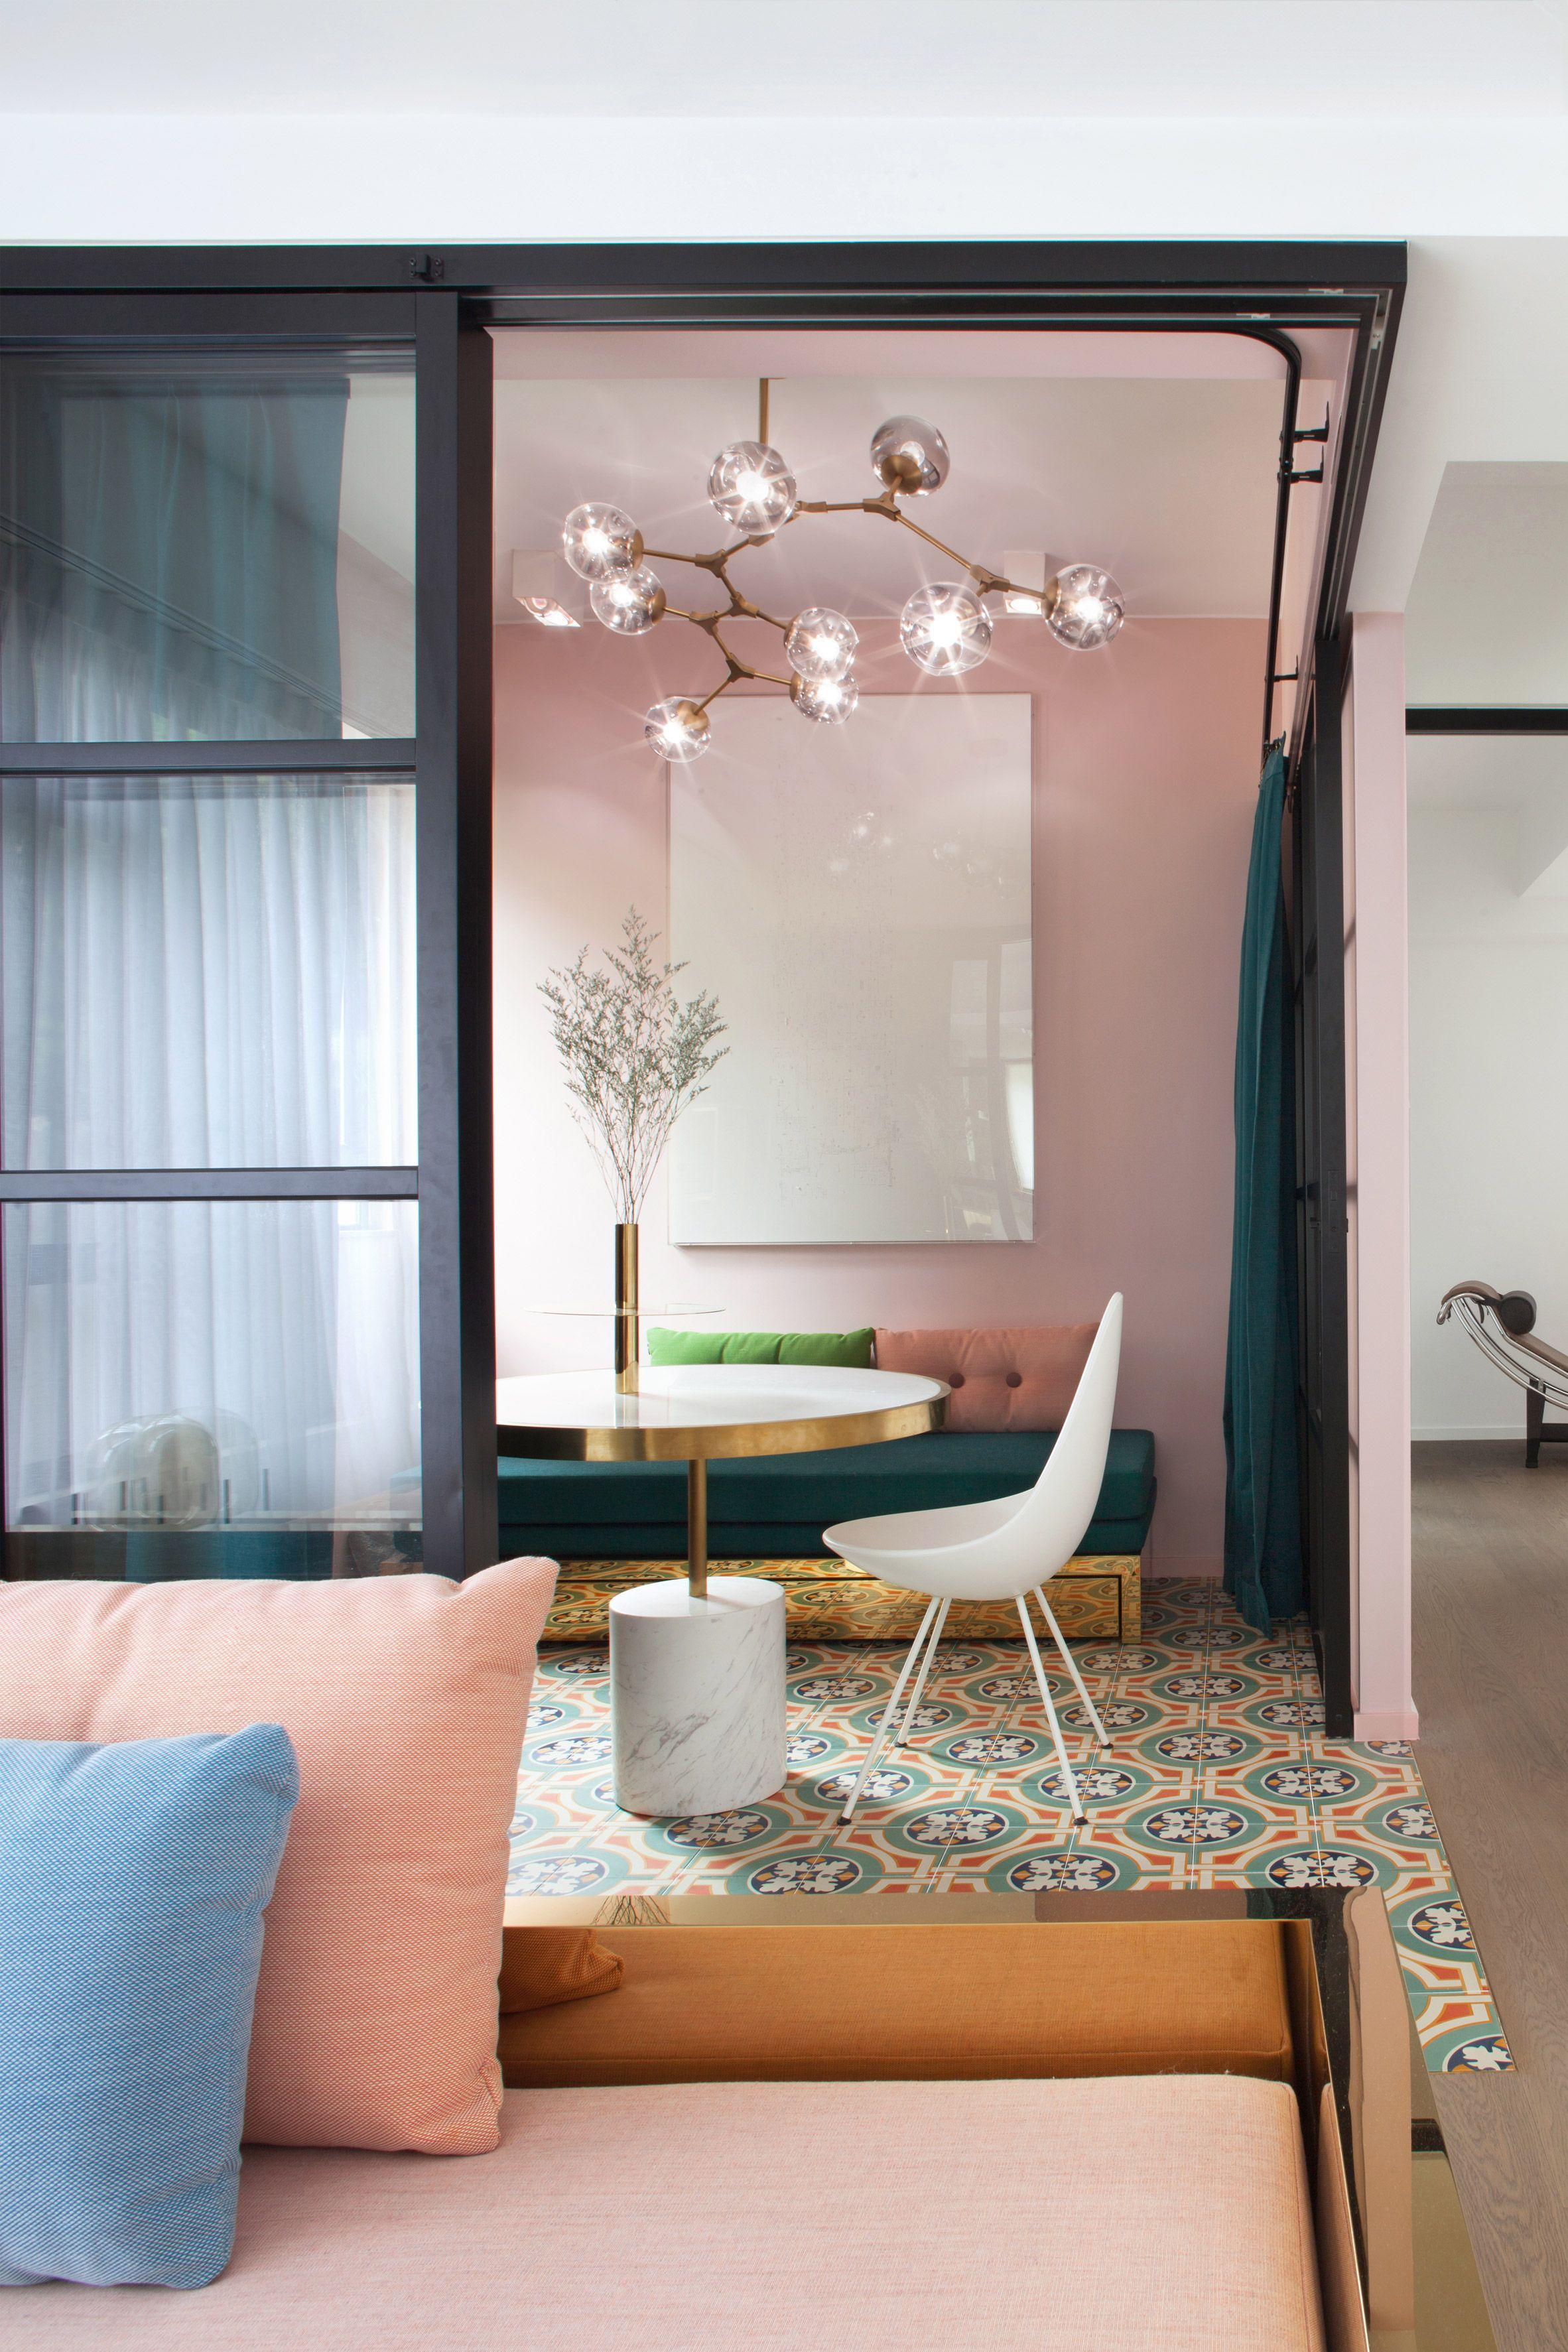 Home interior design hong kong swathes of bright colour combine with patterned ceramic tiles in the